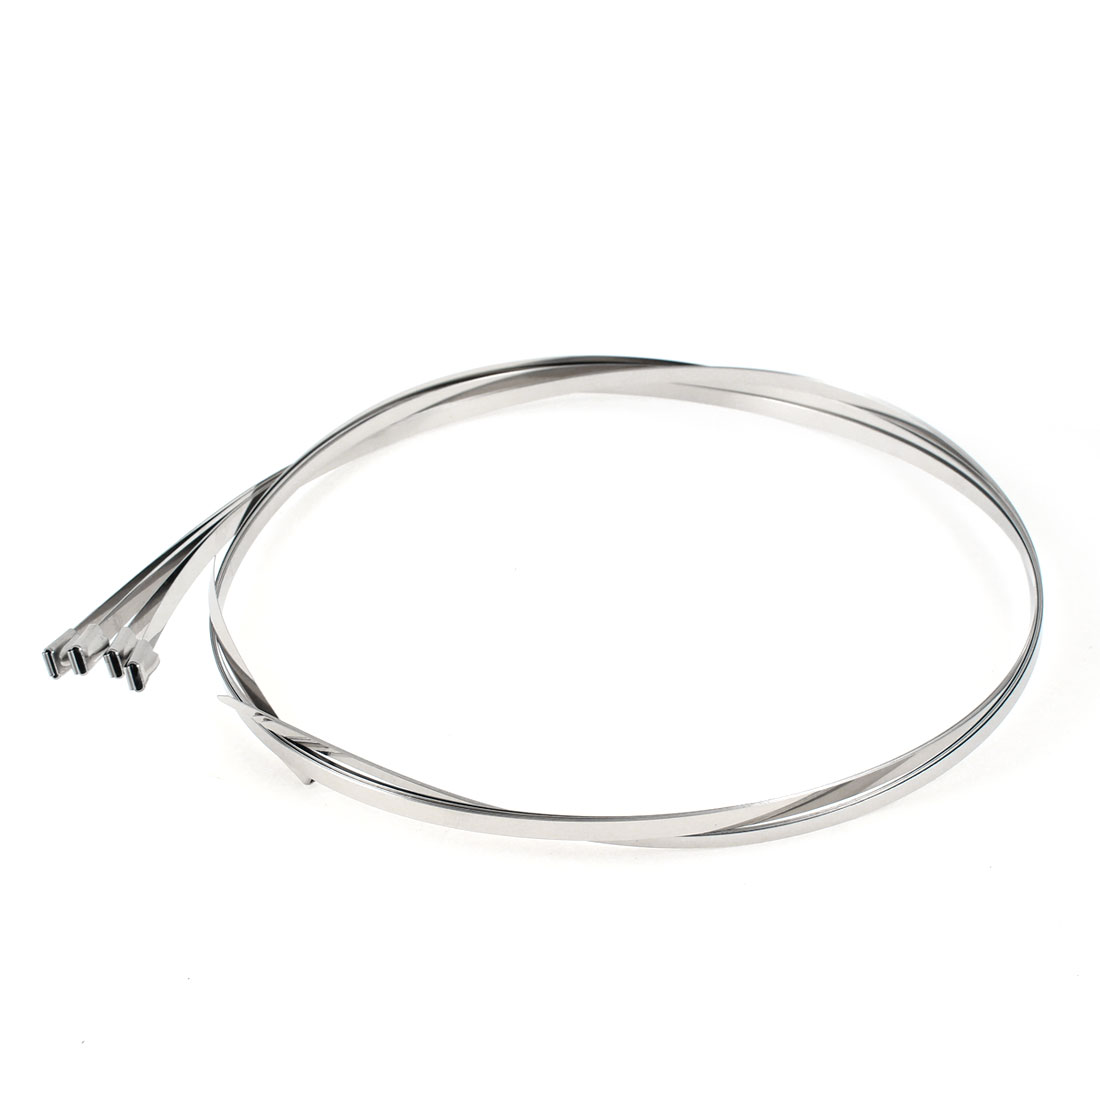 "5pcs 43.3"" Length 4.6mm Width Stainless Steel Sprayed Cable Tie Band Clamp"